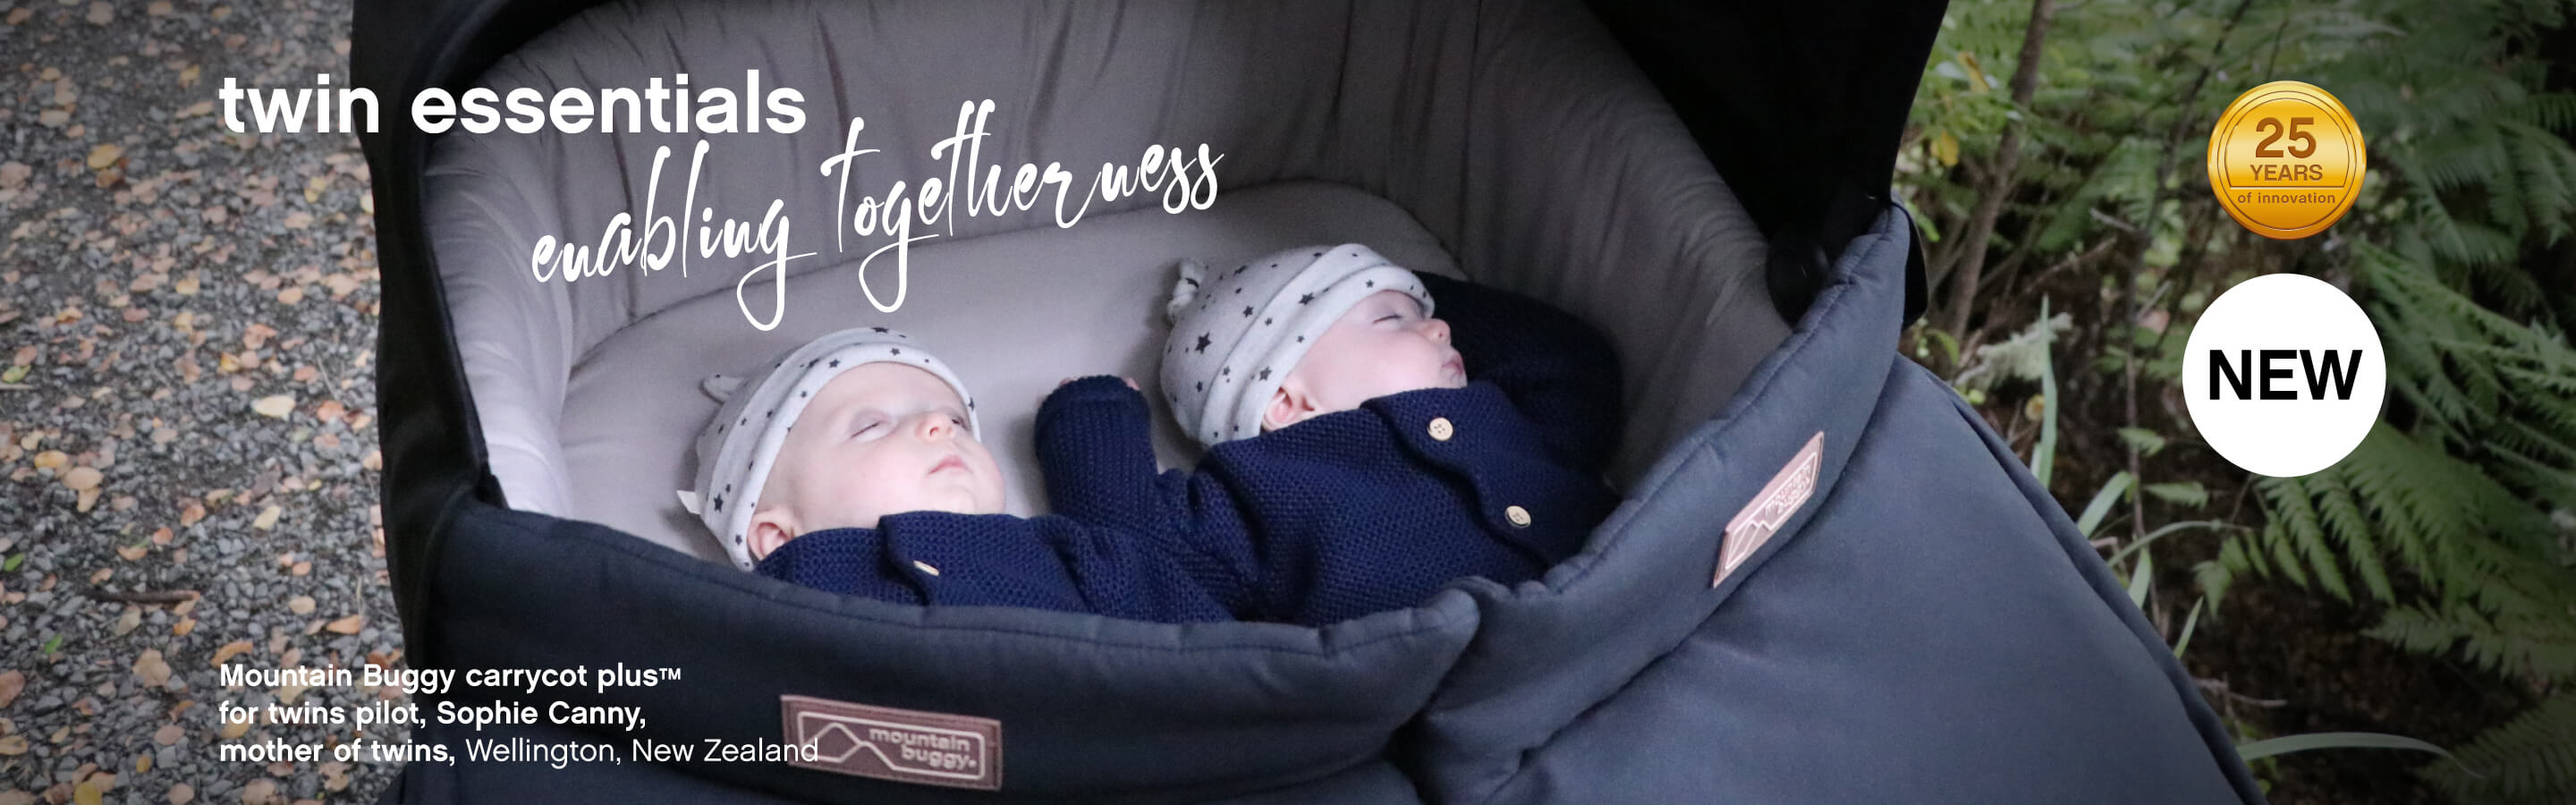 https://cdn.accentuate.io/70393462818/12856880562210/twins-collection-page-banner-1-DTP-2880-x-900-v1605649166547.jpg?2880x900